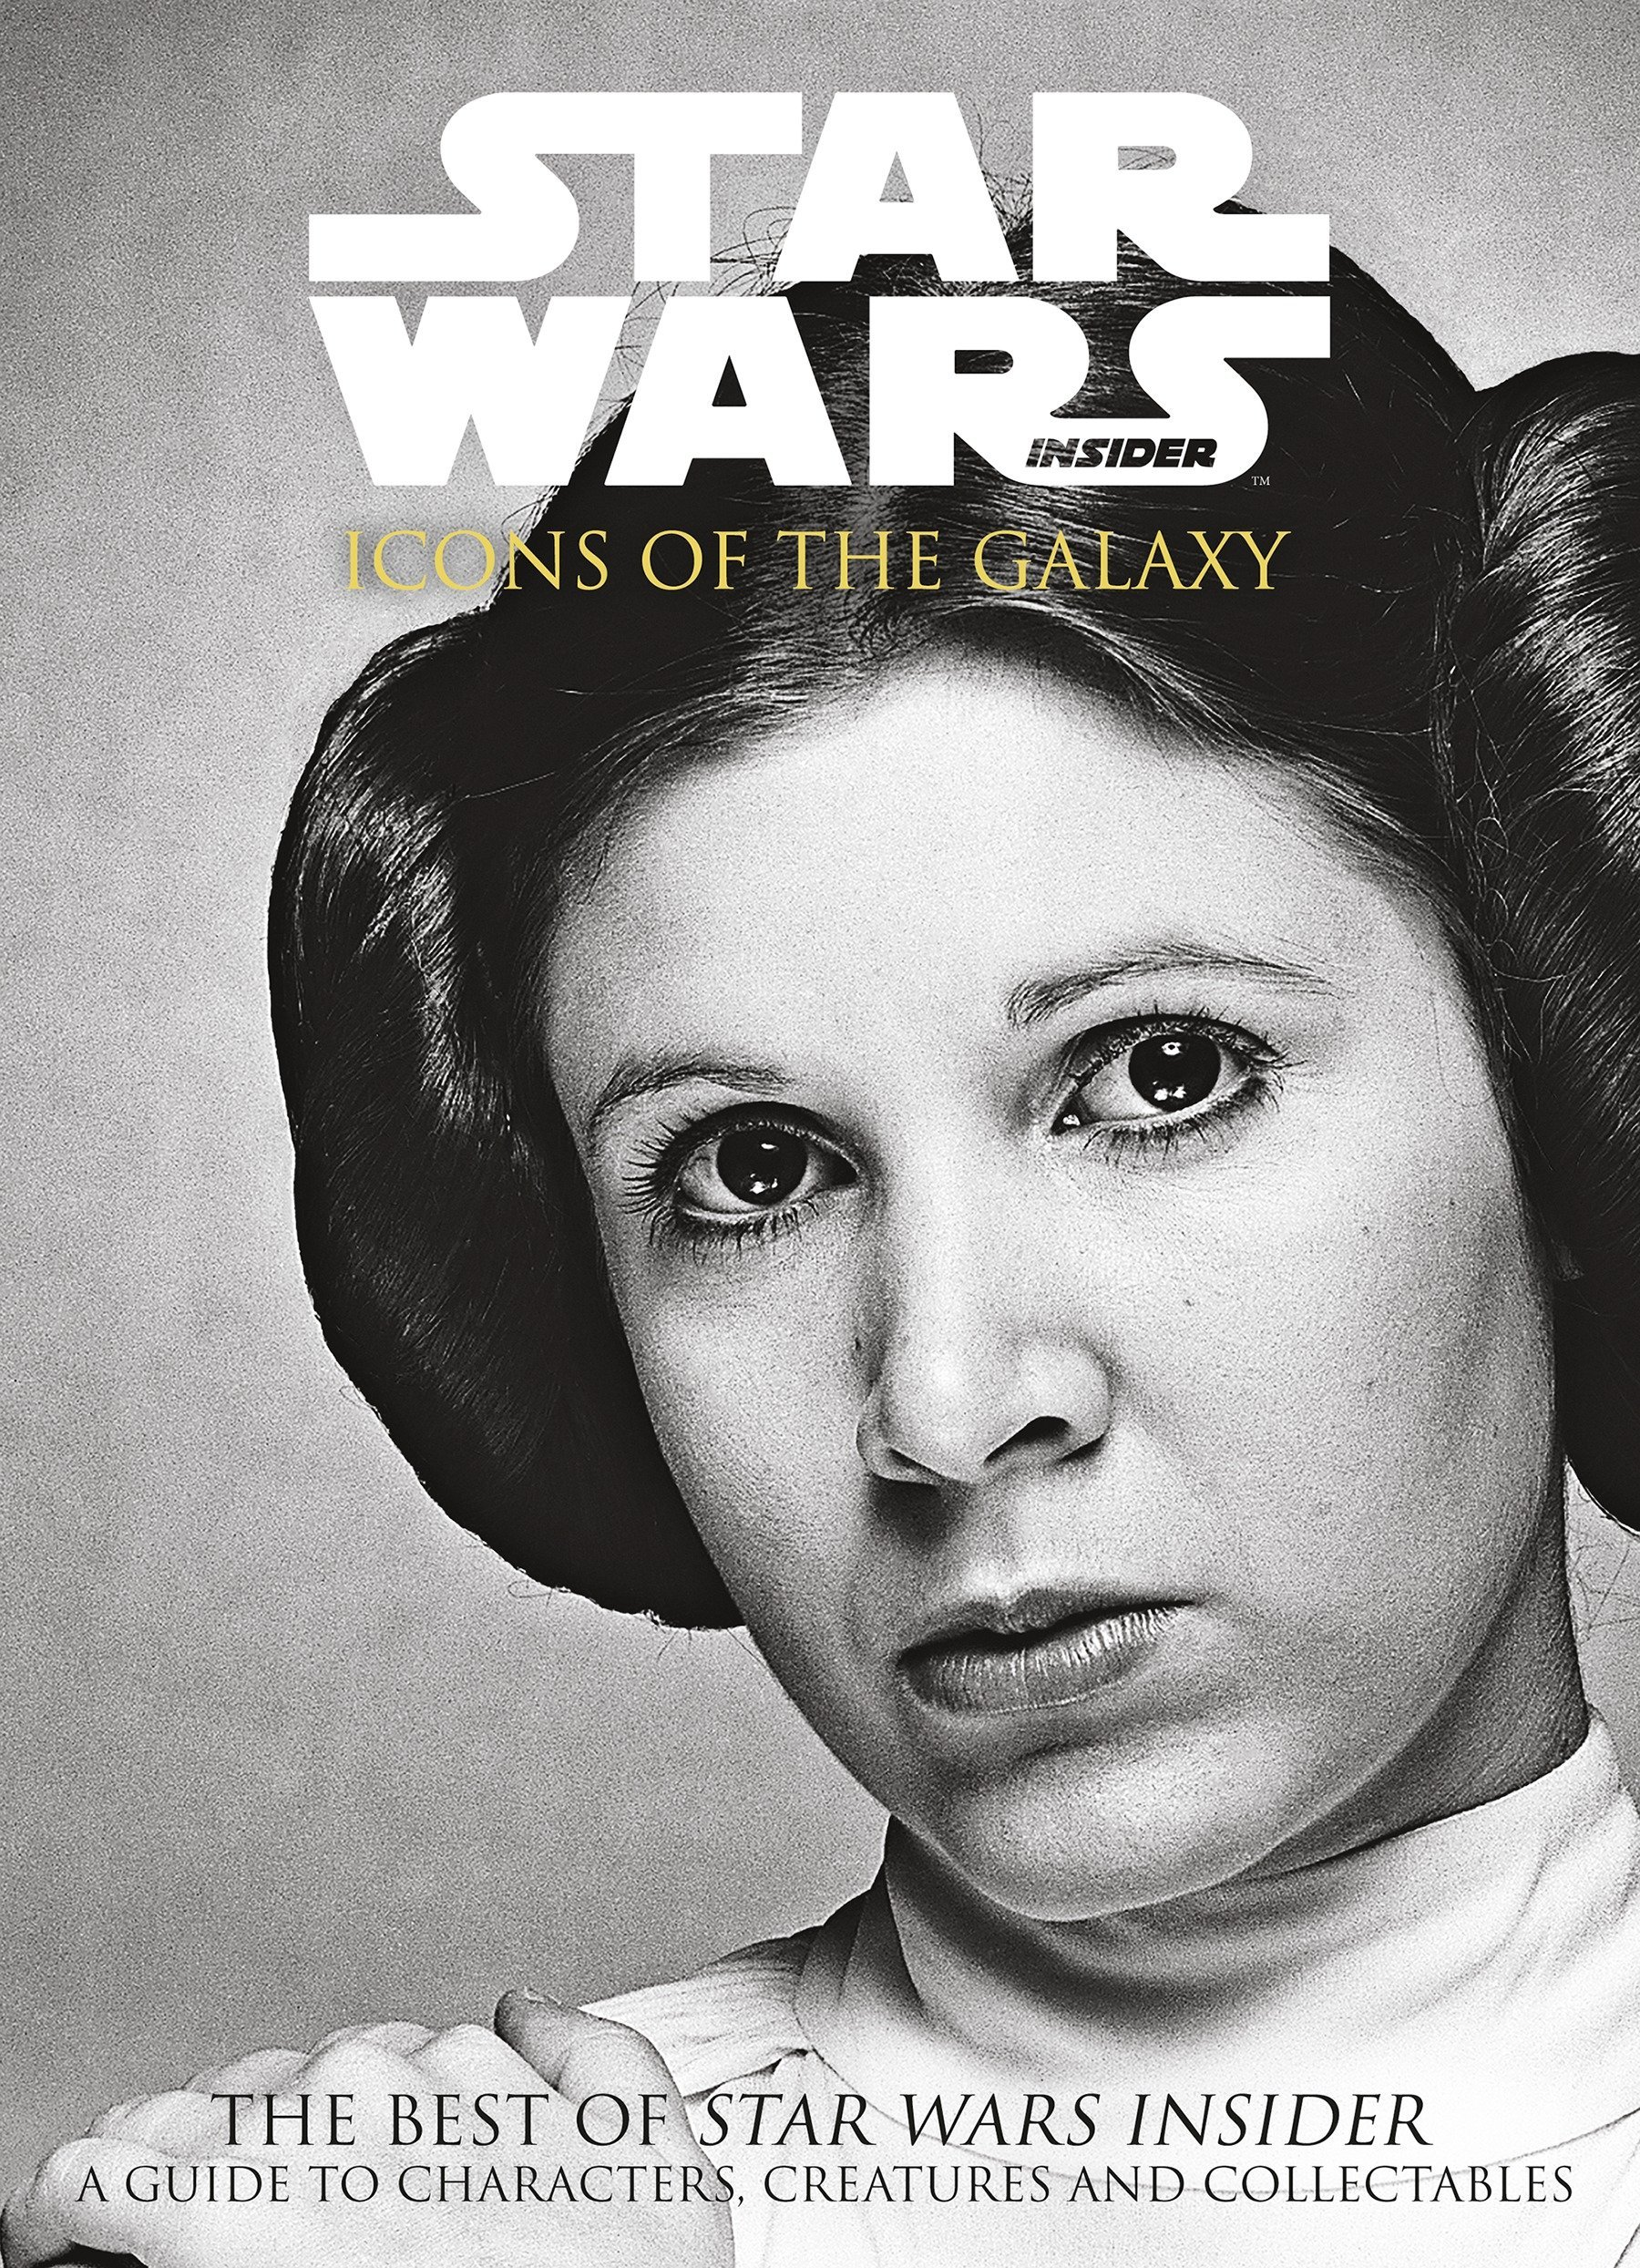 Star Wars Insider: Icons of the Galaxy (The Best of Star Wars Insider)